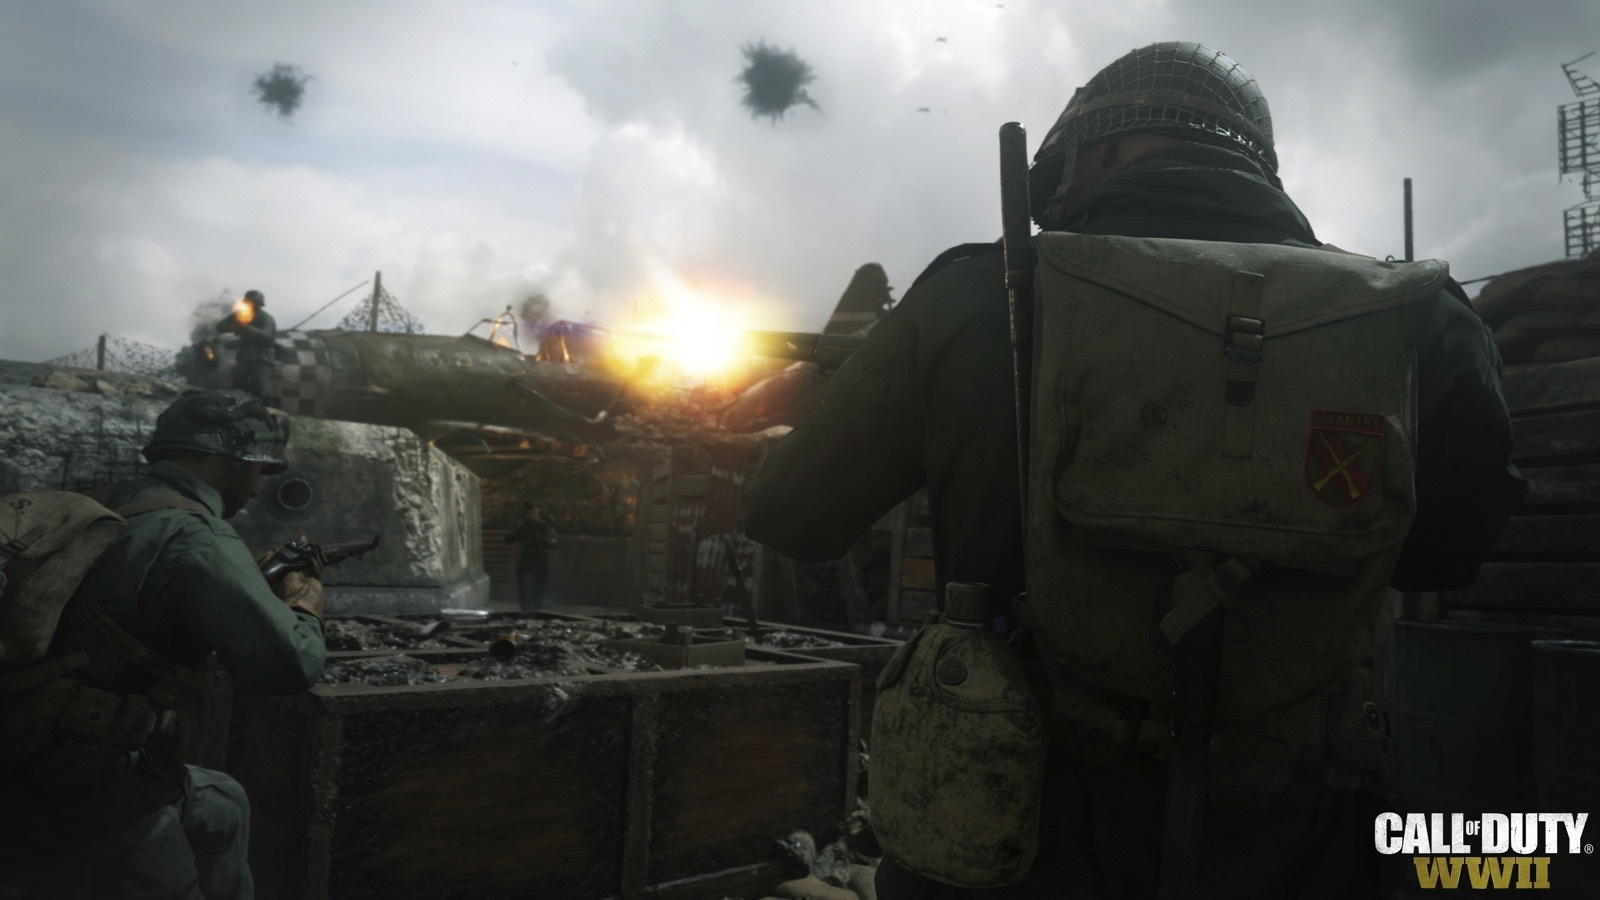 How a blind 'Call of Duty' player is racking up thousands of